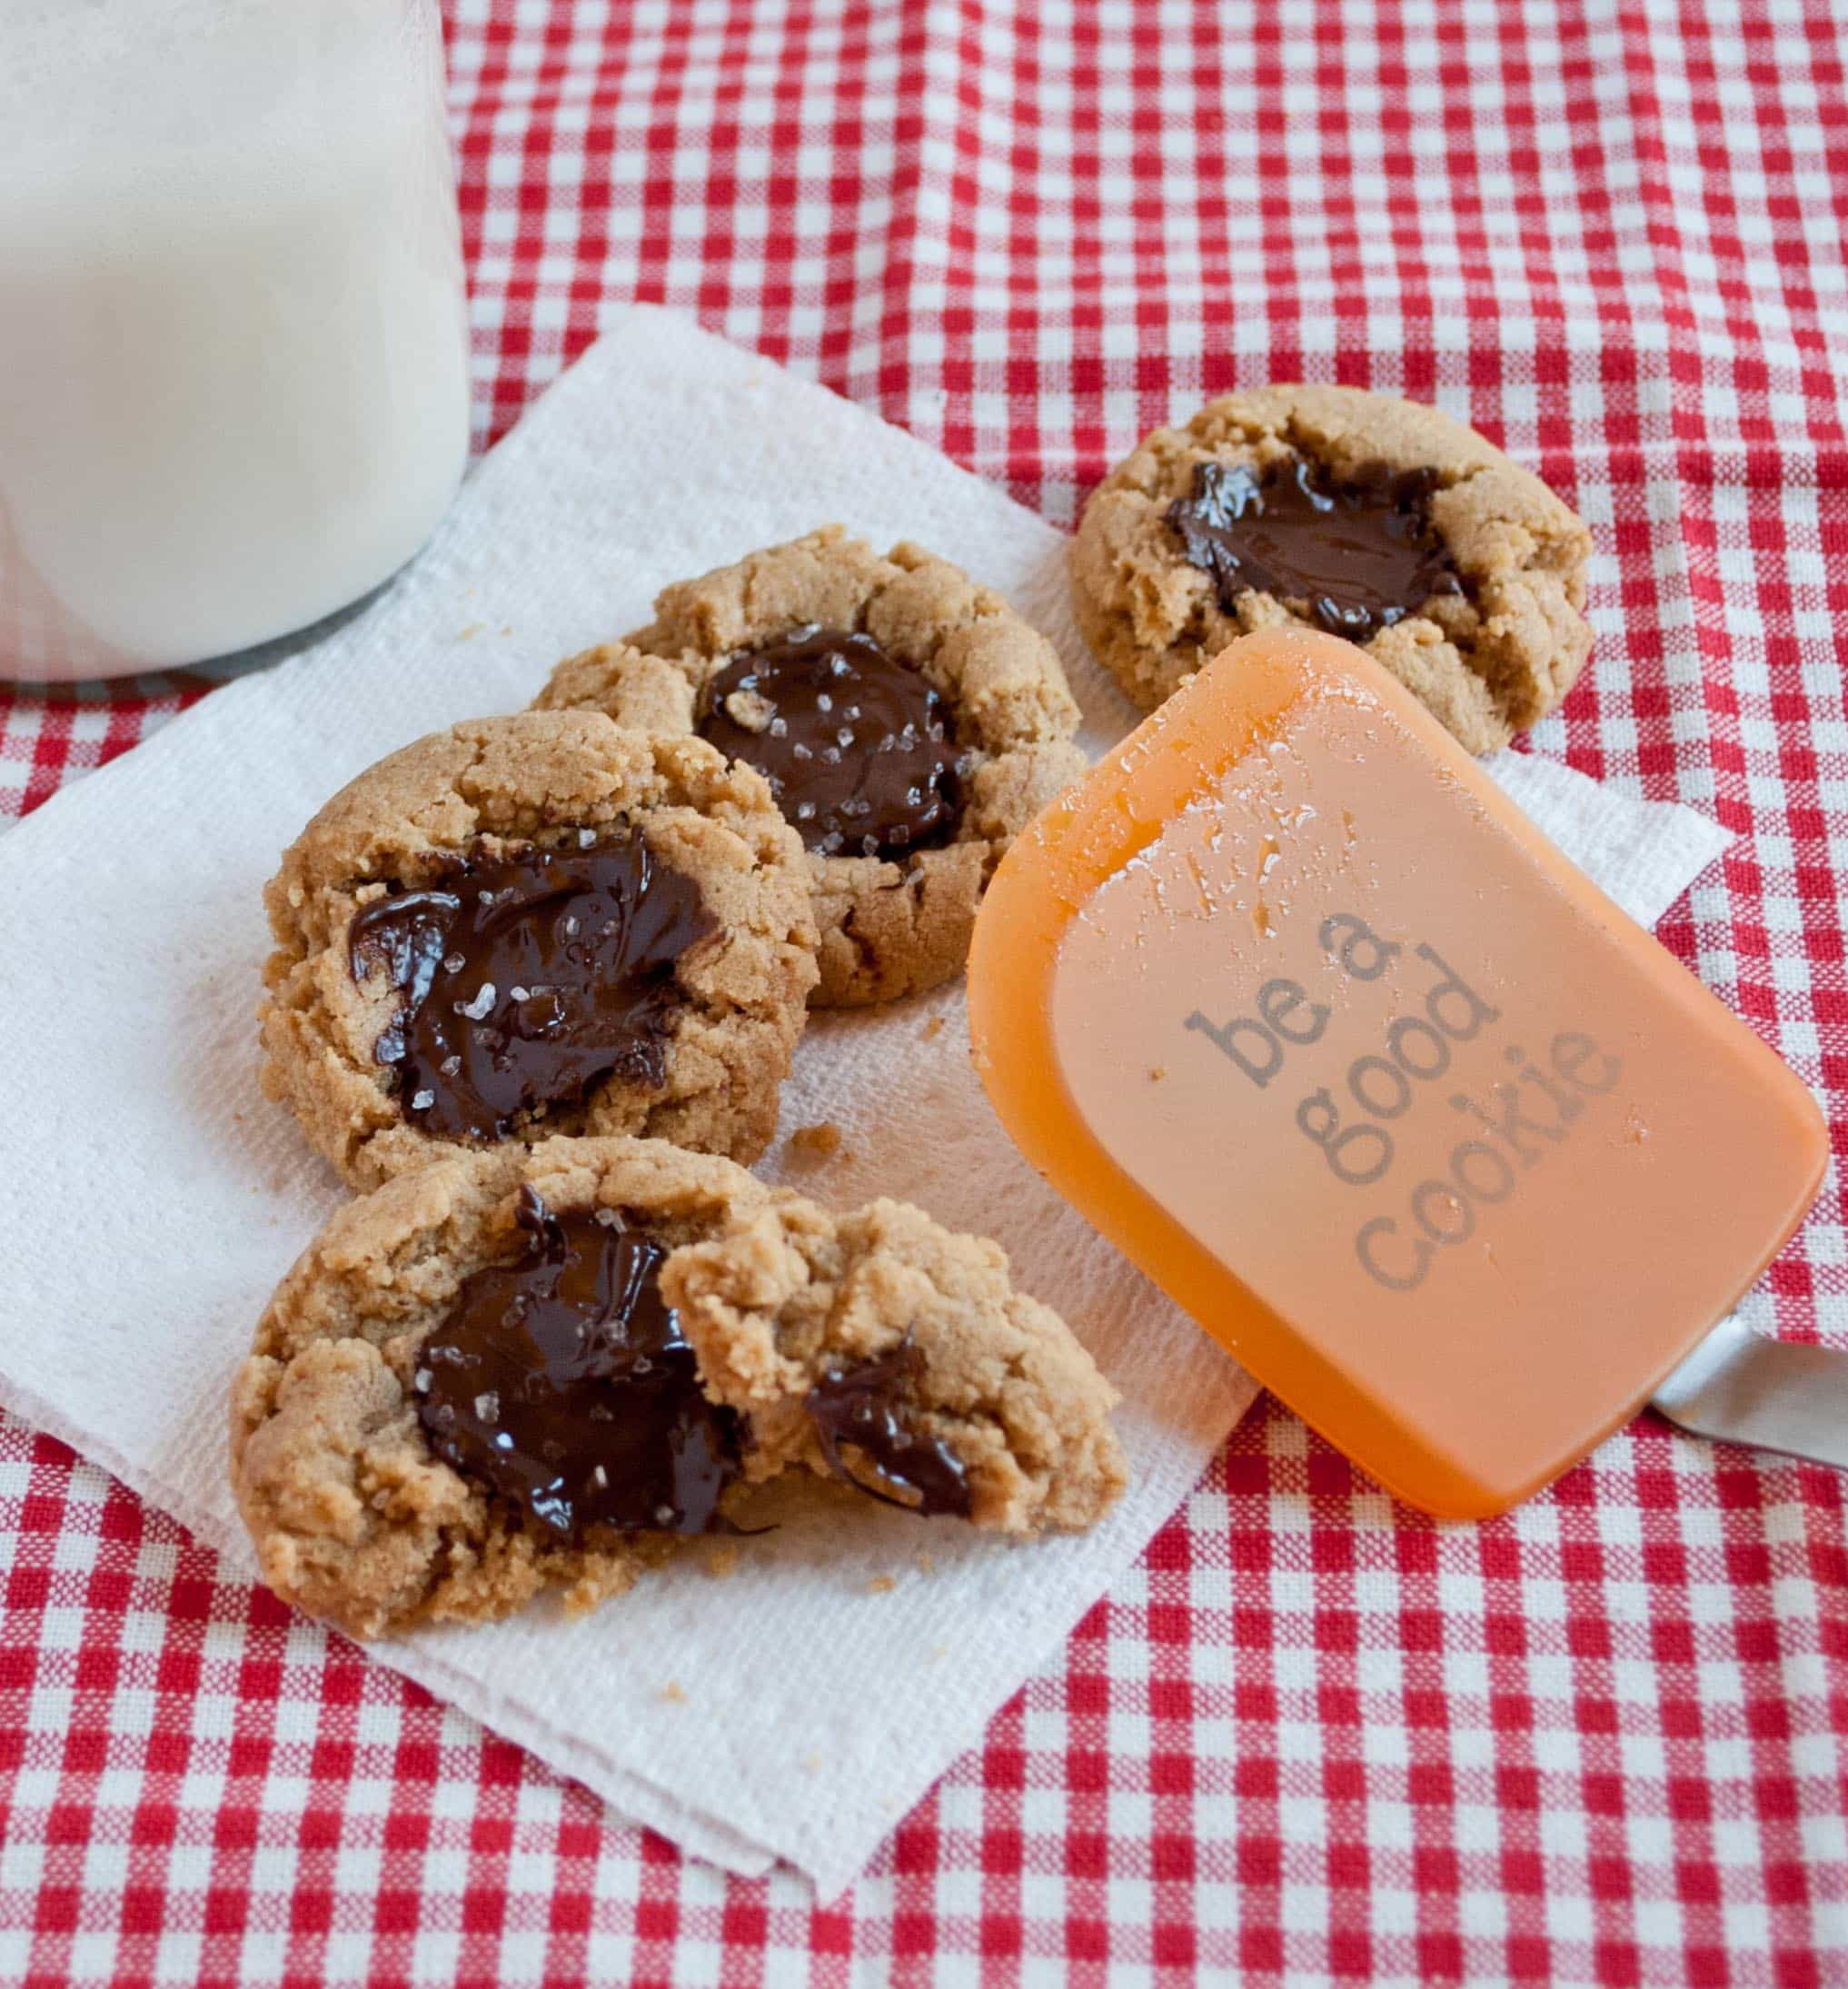 Peanut Butter Chocolate Thumbprint Cookies with Sea Salt